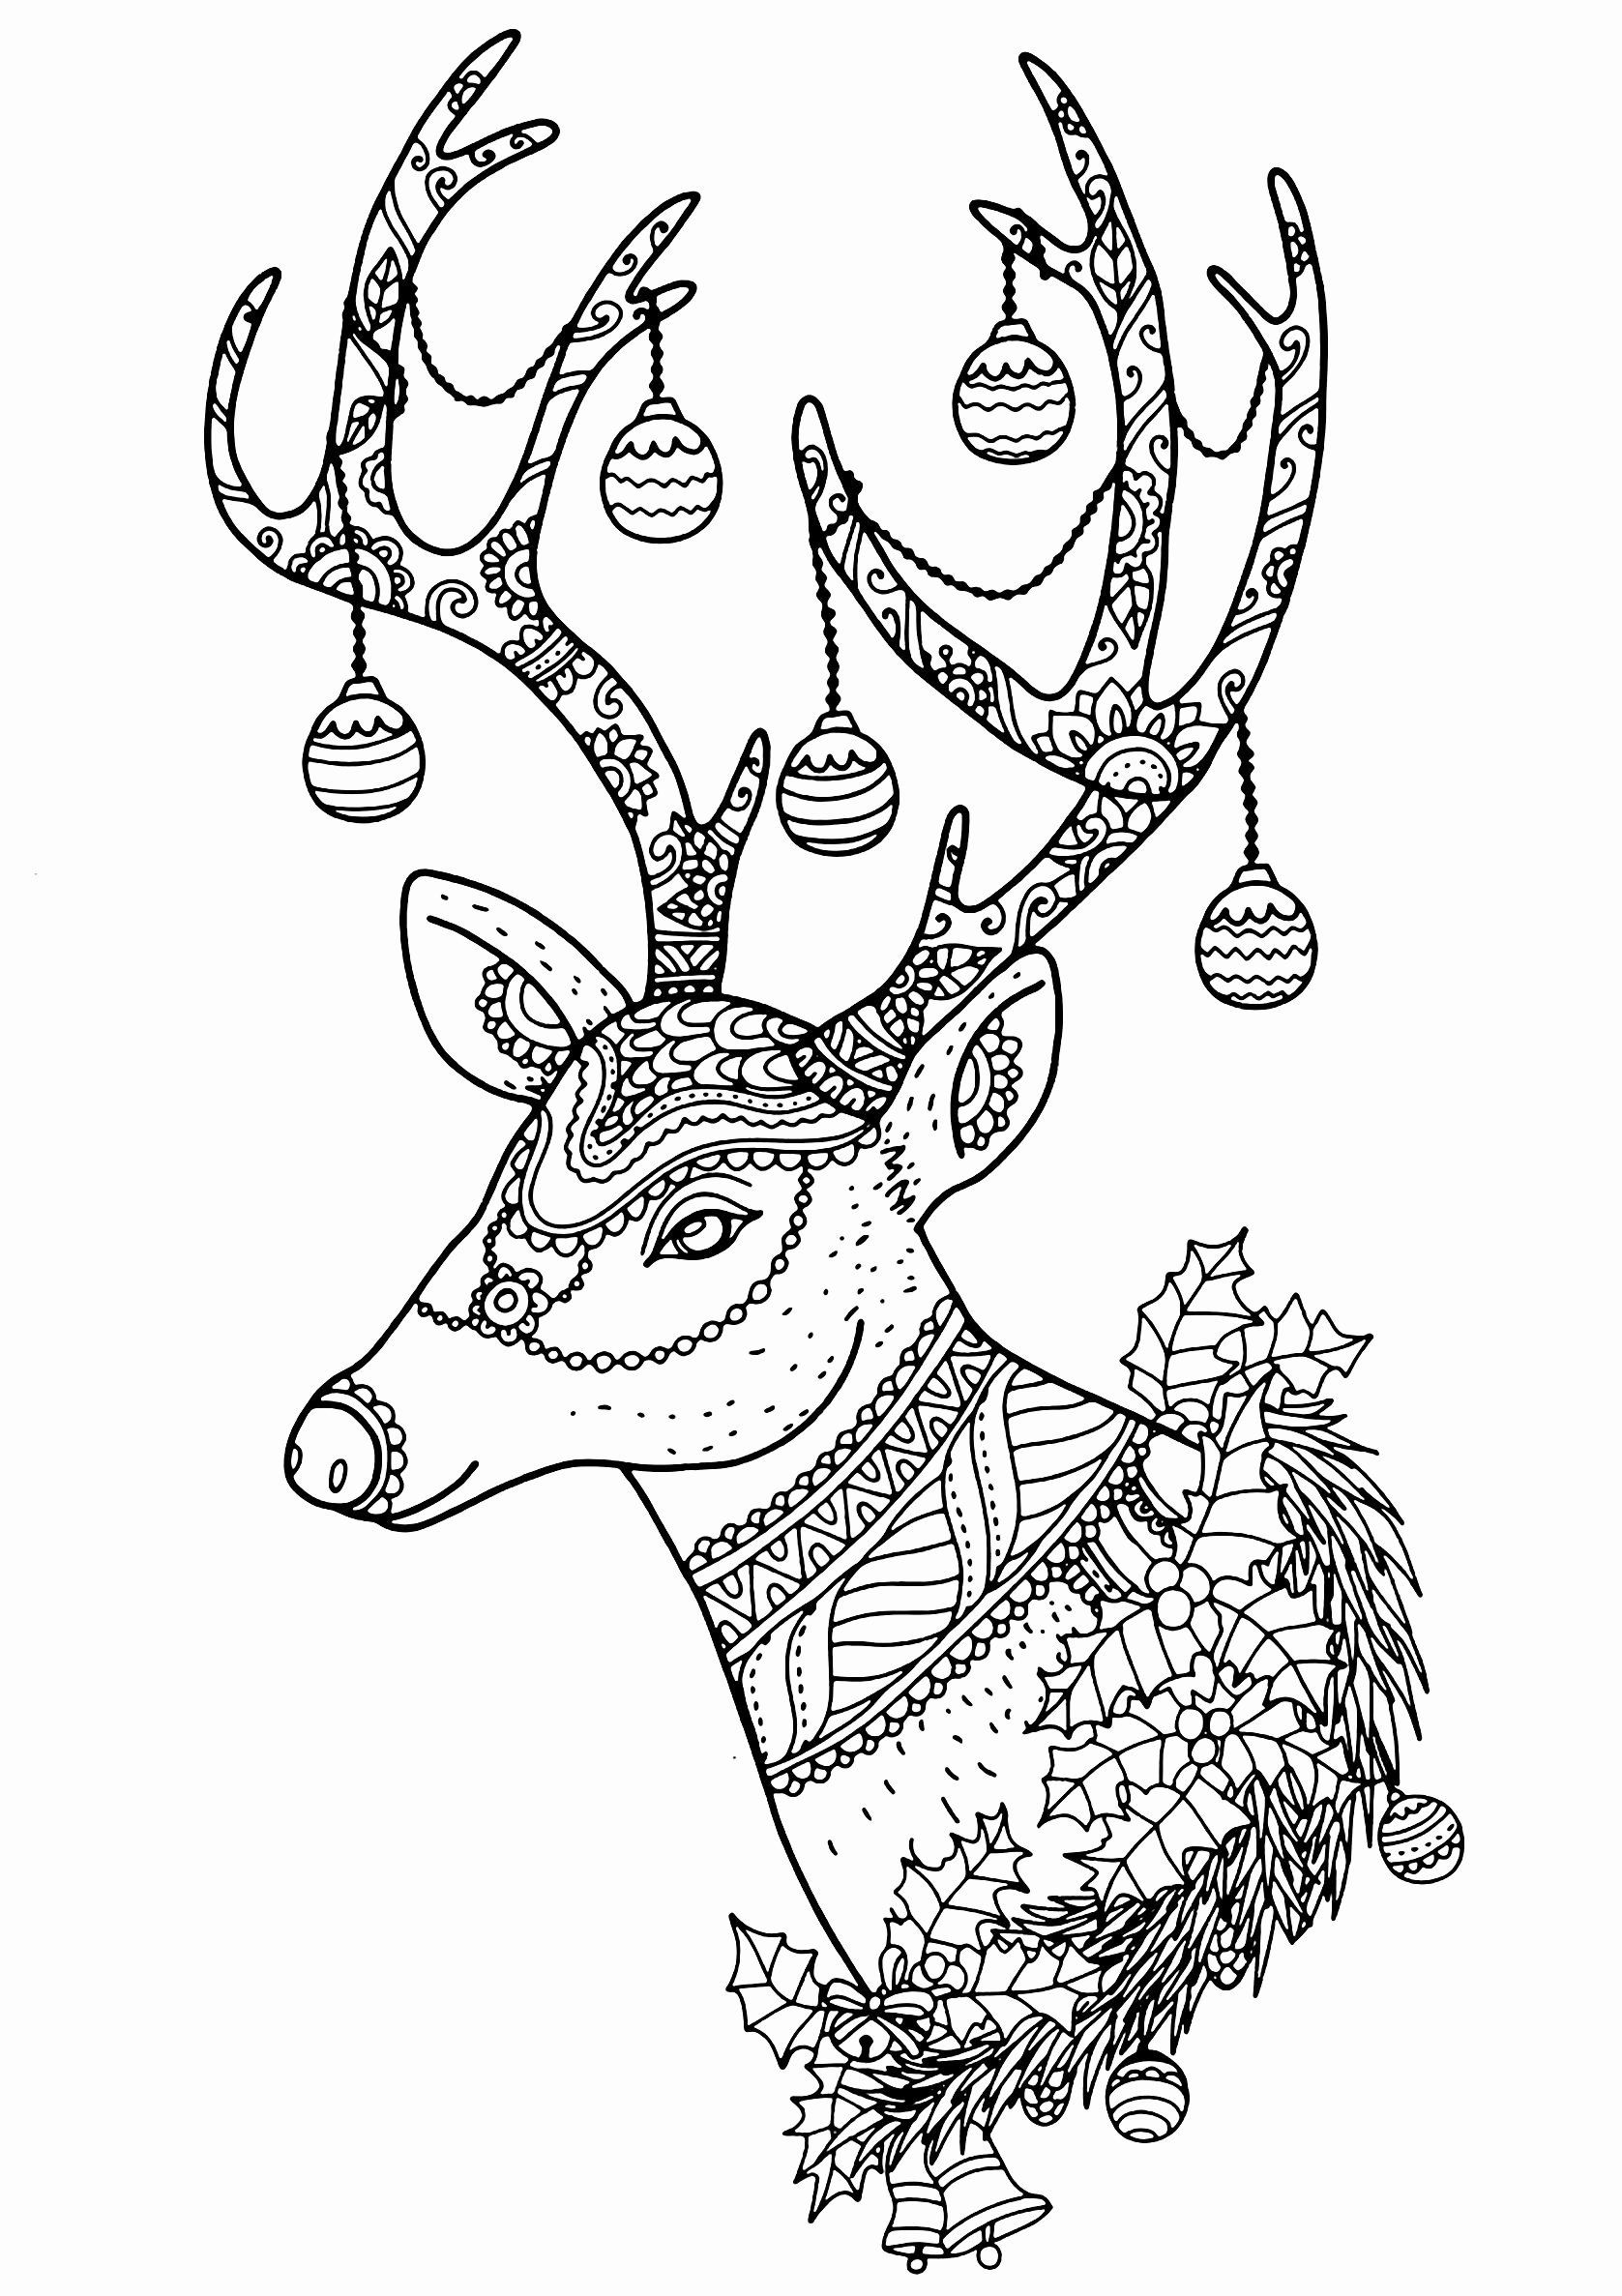 Christmas Coloring Sheets For Adults Lovely Christmas Reindeer Nontachai Hengtragool Chr In 2020 Christmas Coloring Pages Christmas Coloring Sheets Deer Coloring Pages